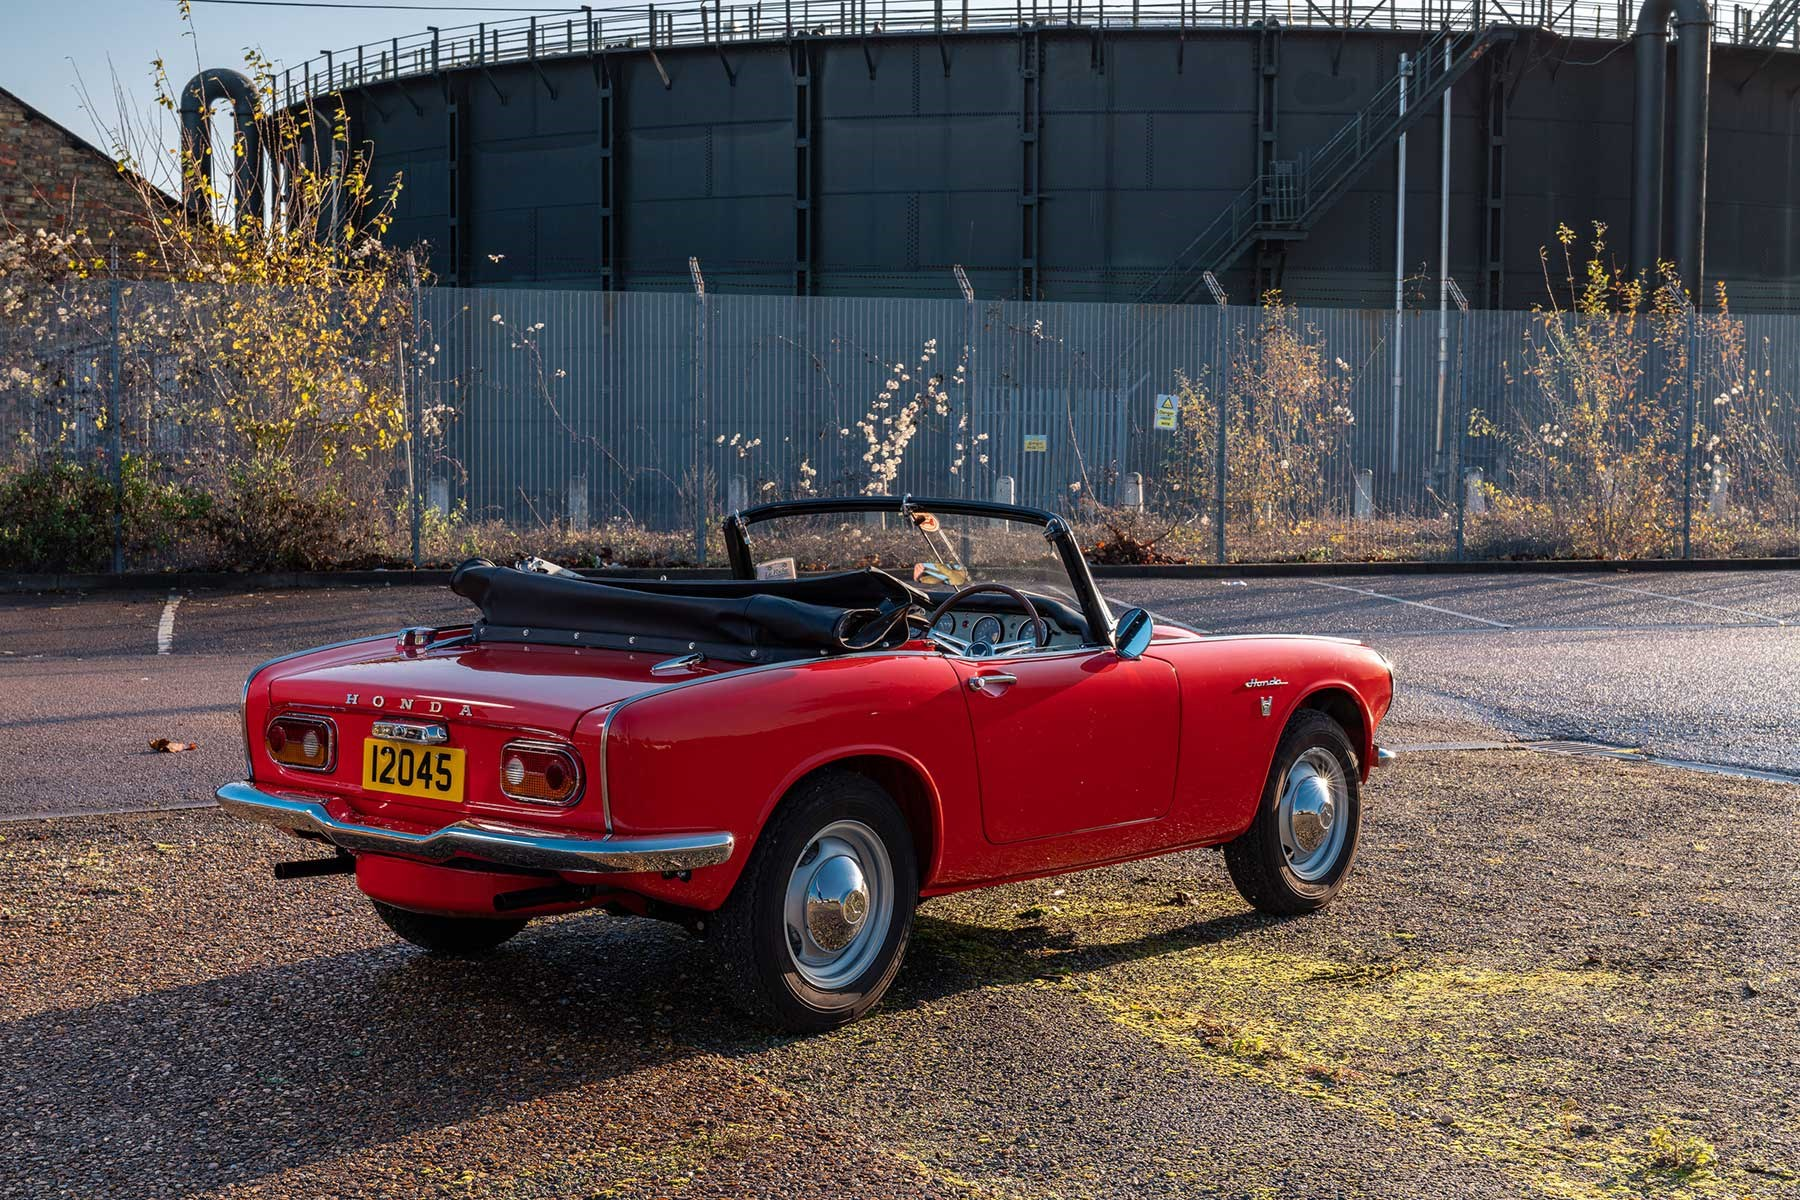 1967 Honda S800 photographed by Alex Tapley for CAR magazine